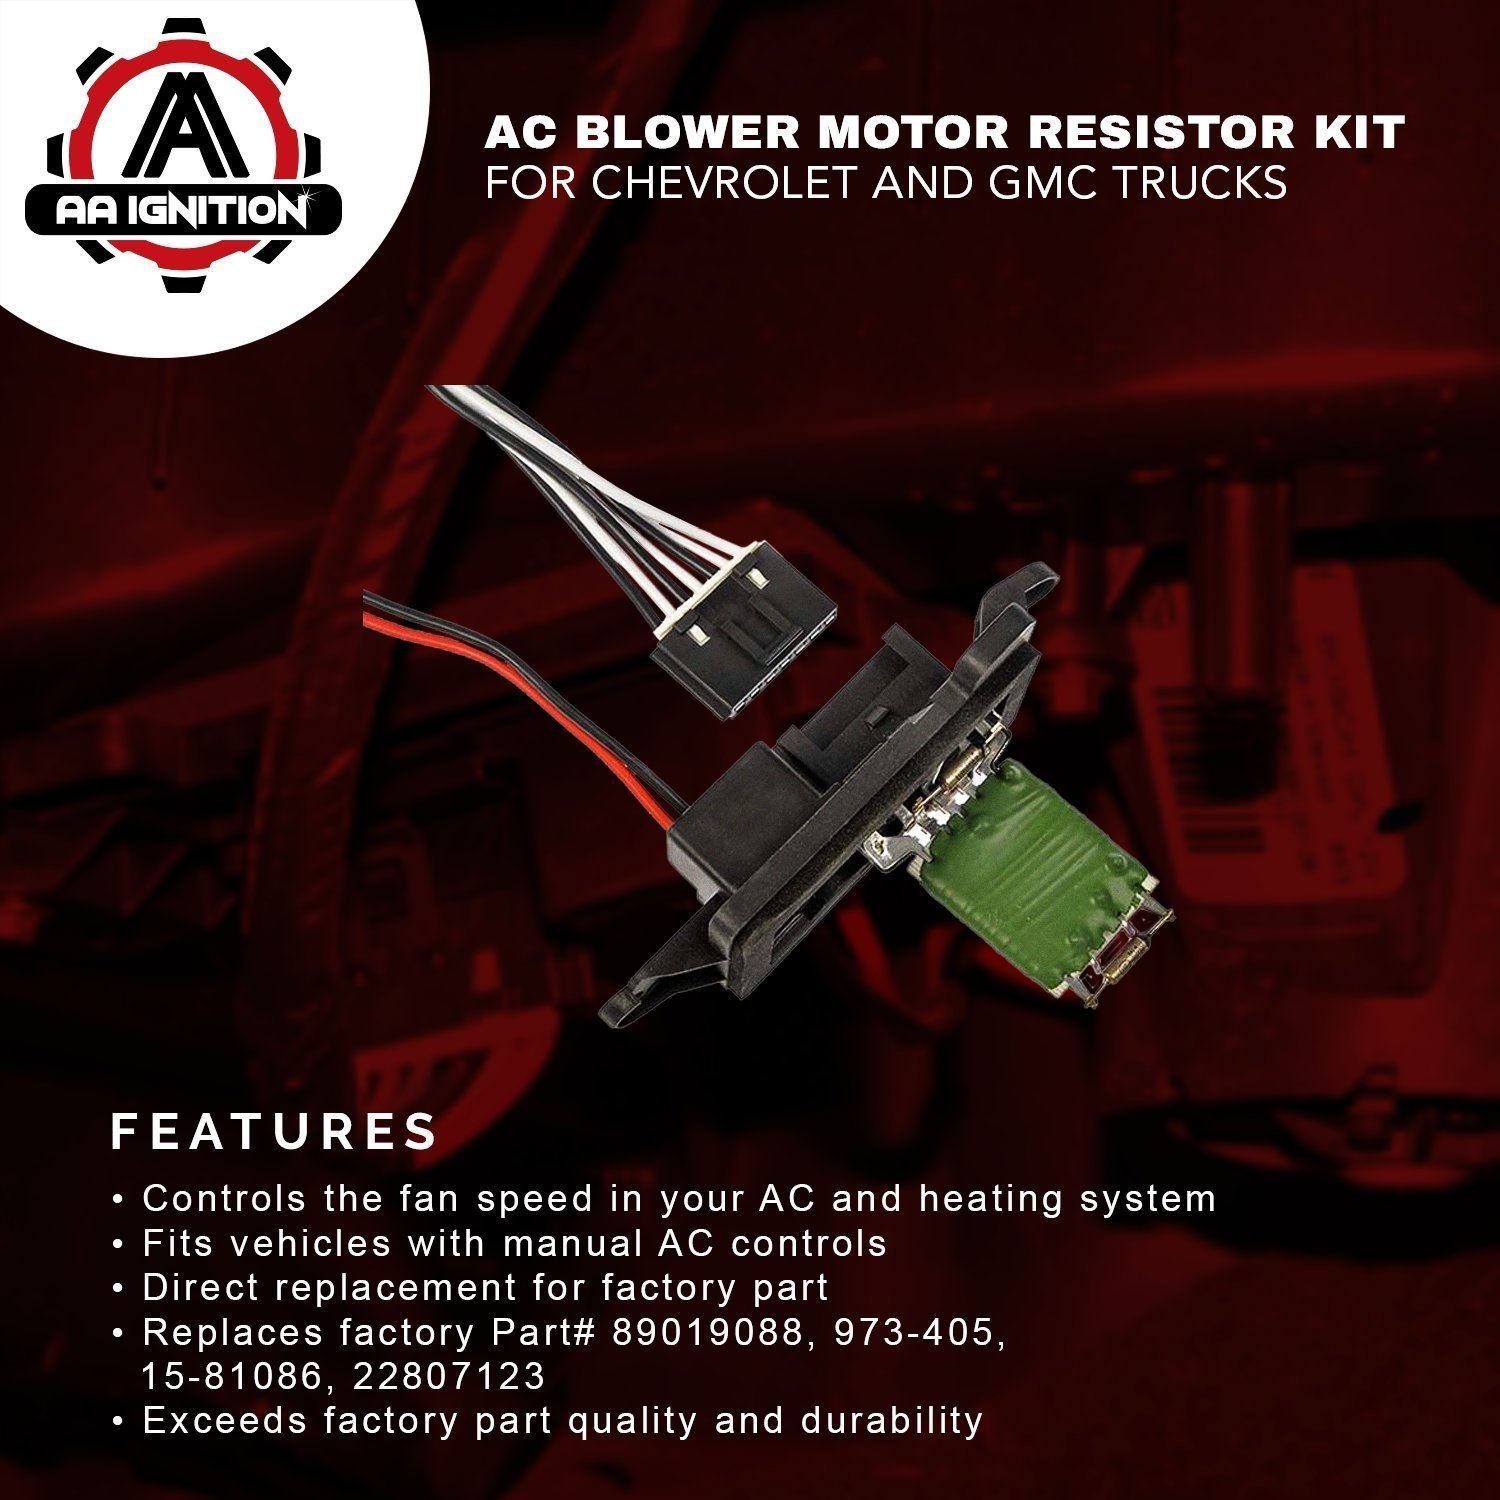 Ac Blower Motor Resistor Kit With Harness Replaces 2000 Tahoe Fan Switch Wiring Diagram 89019088 973 405 15 81086 22807123 Fits Chevy Silverado Suburban Avalanche